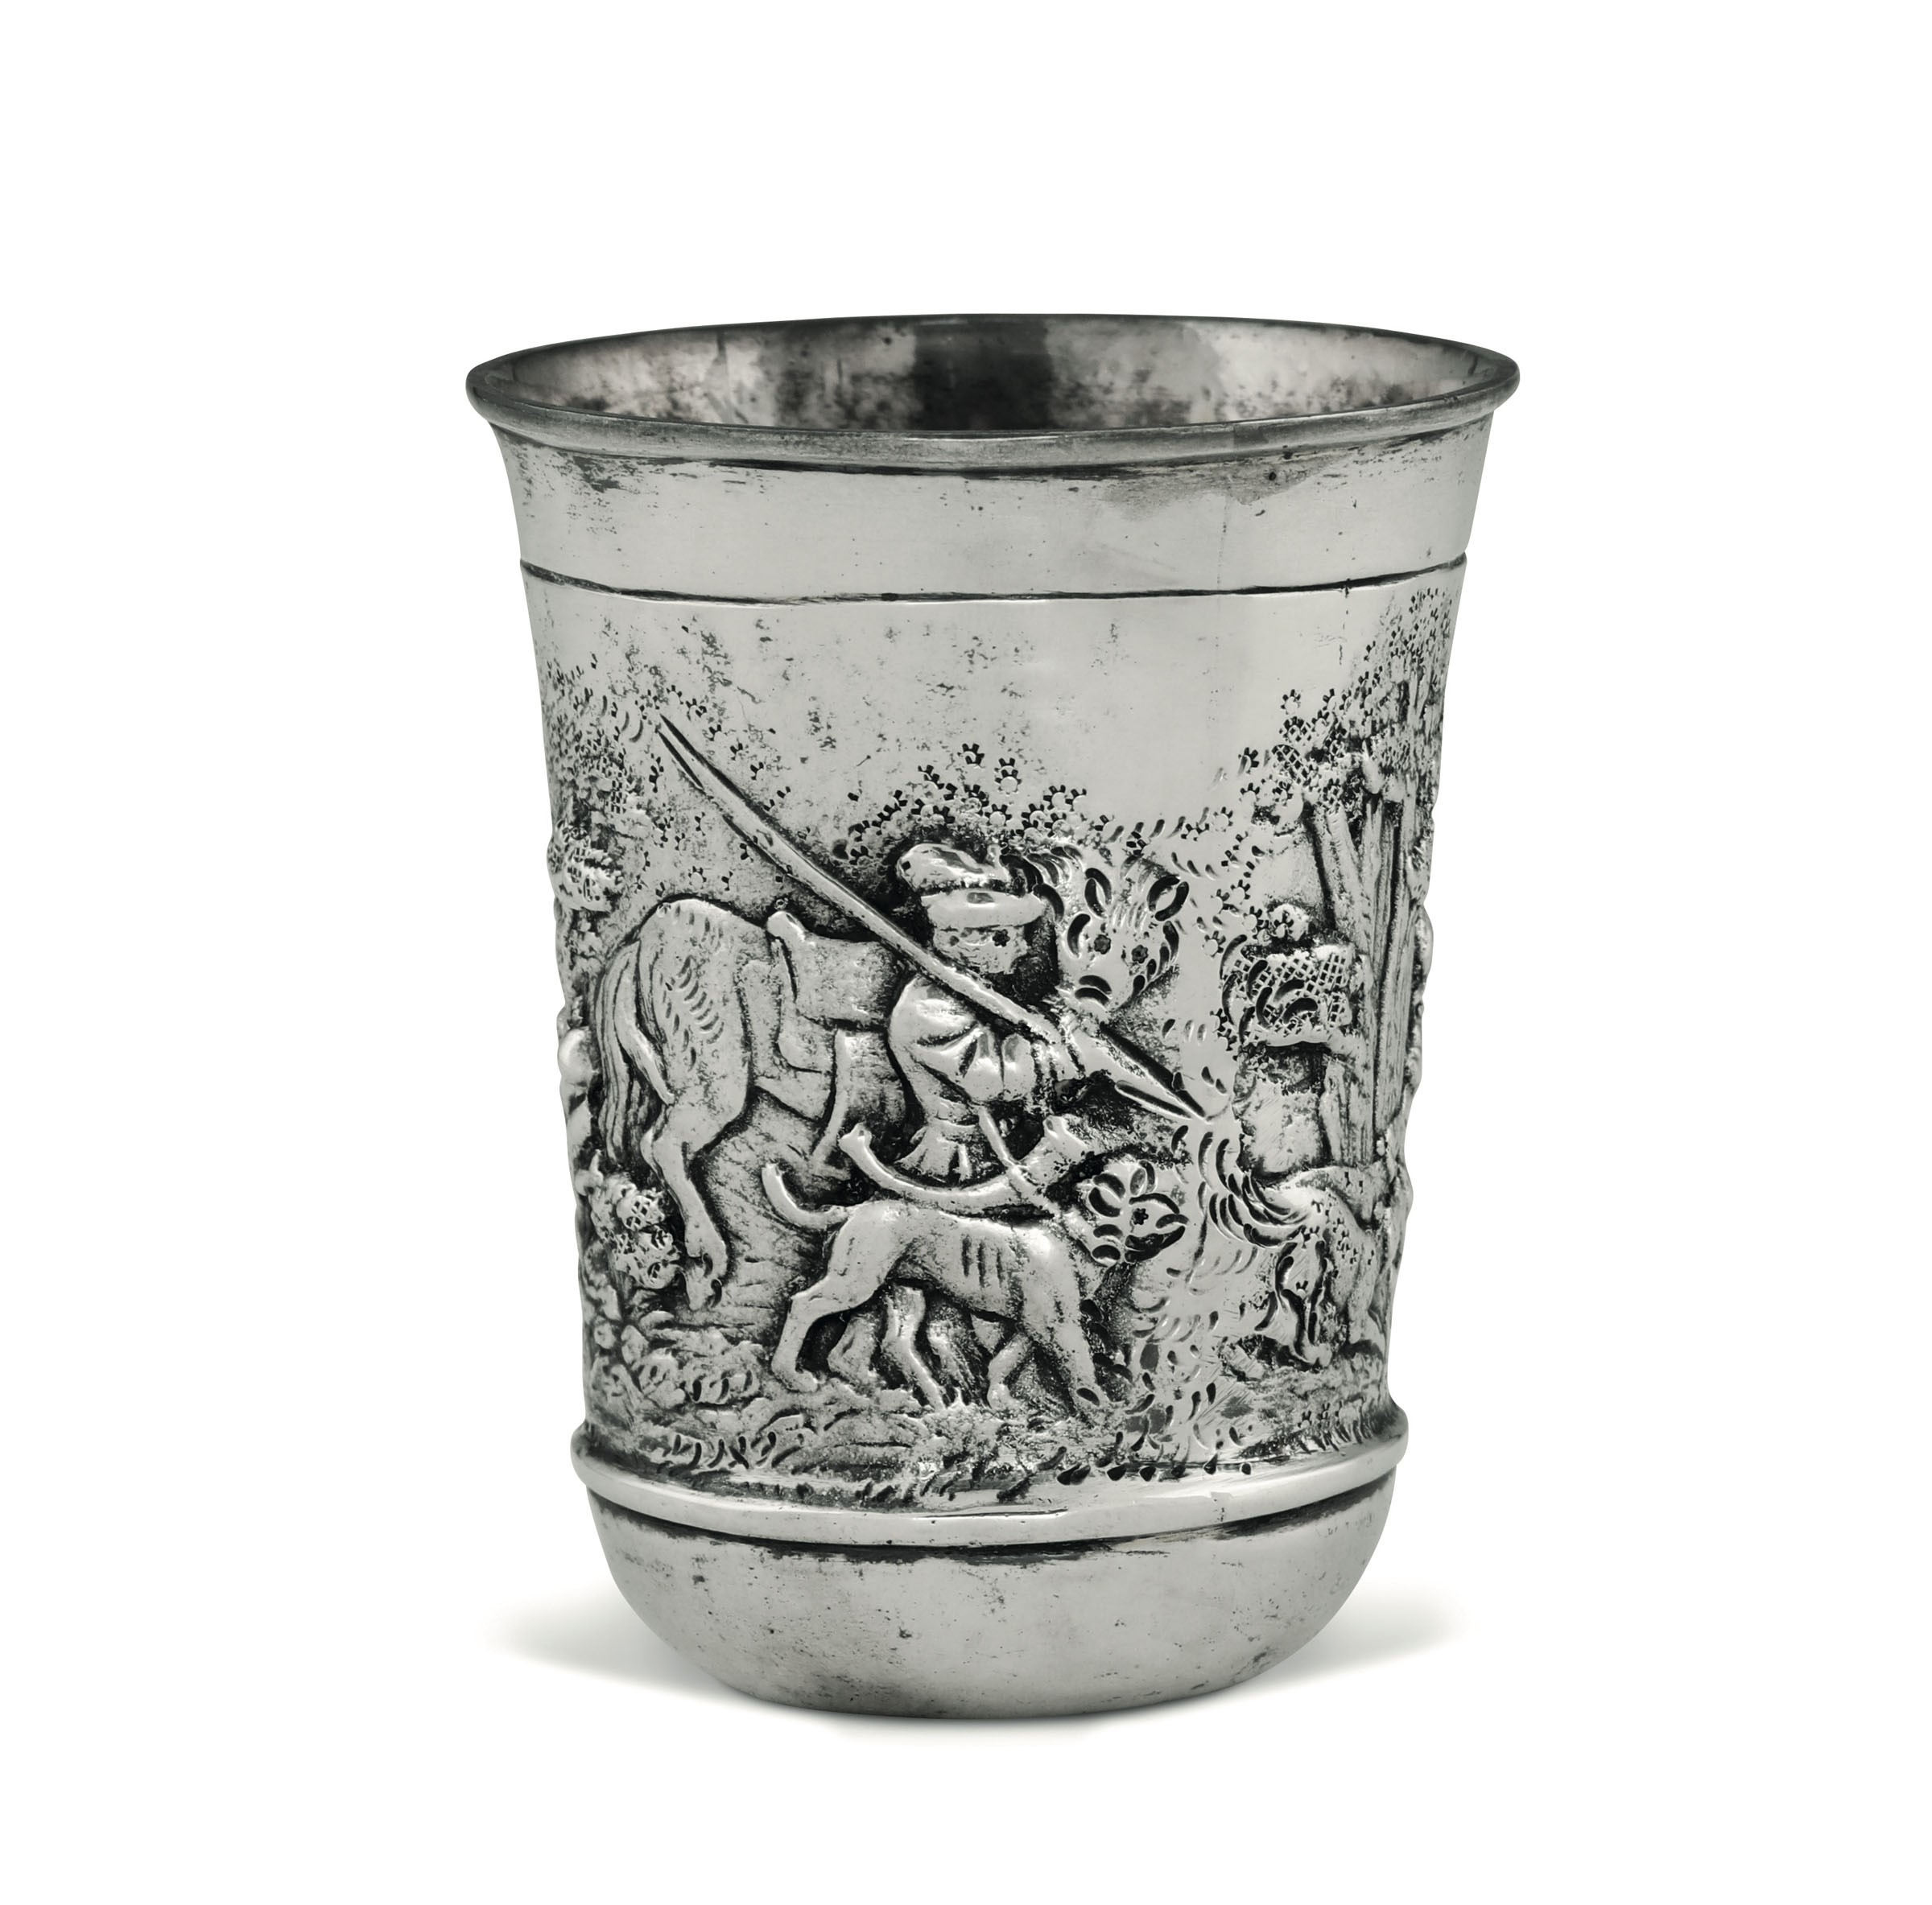 Lot 52 - A silver hunter's cup, Germany, 1800s - Embossed and chiselled silver. 240gr, H 10cm, [...]